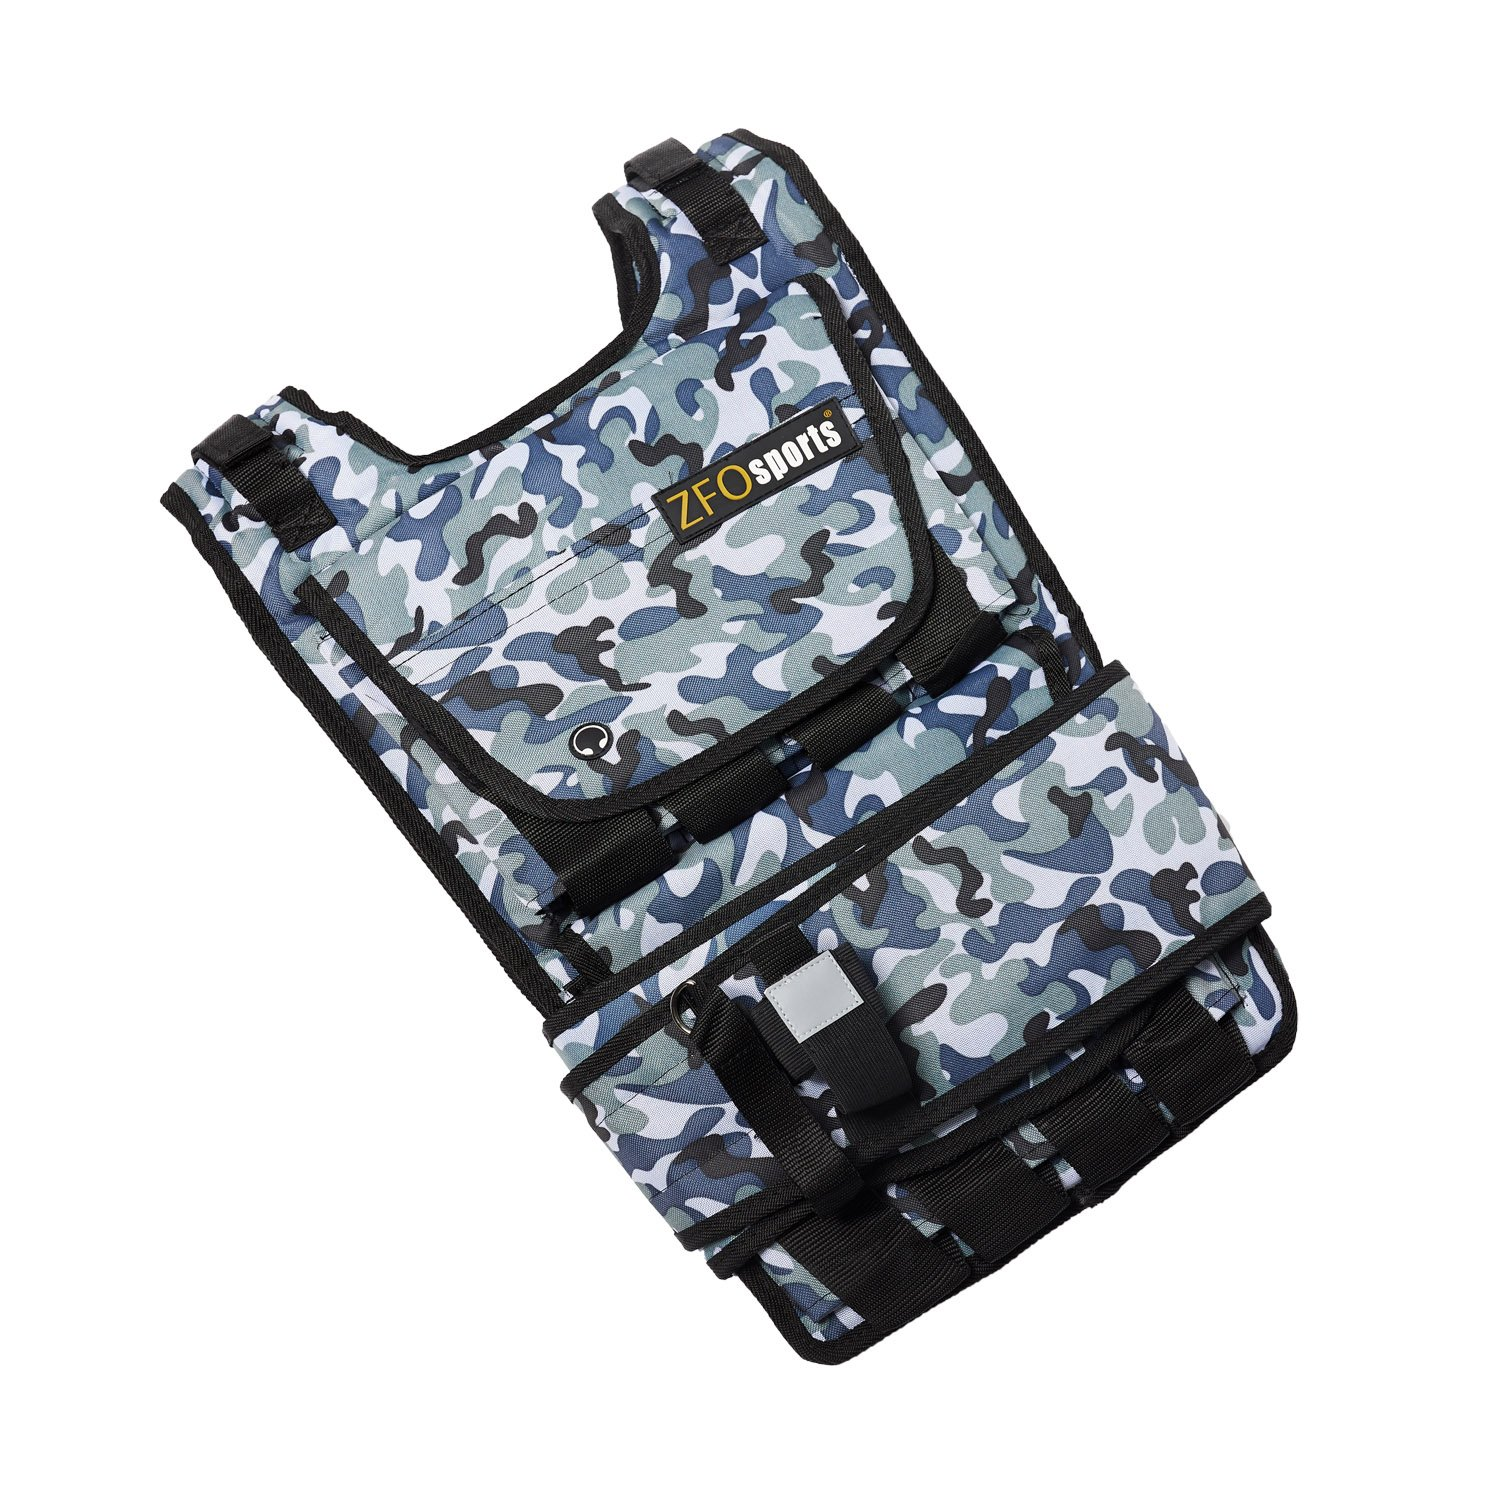 ZFOsports Weighted Vest 40lbs/60lbs/80lbs (Arctic 40LBS)